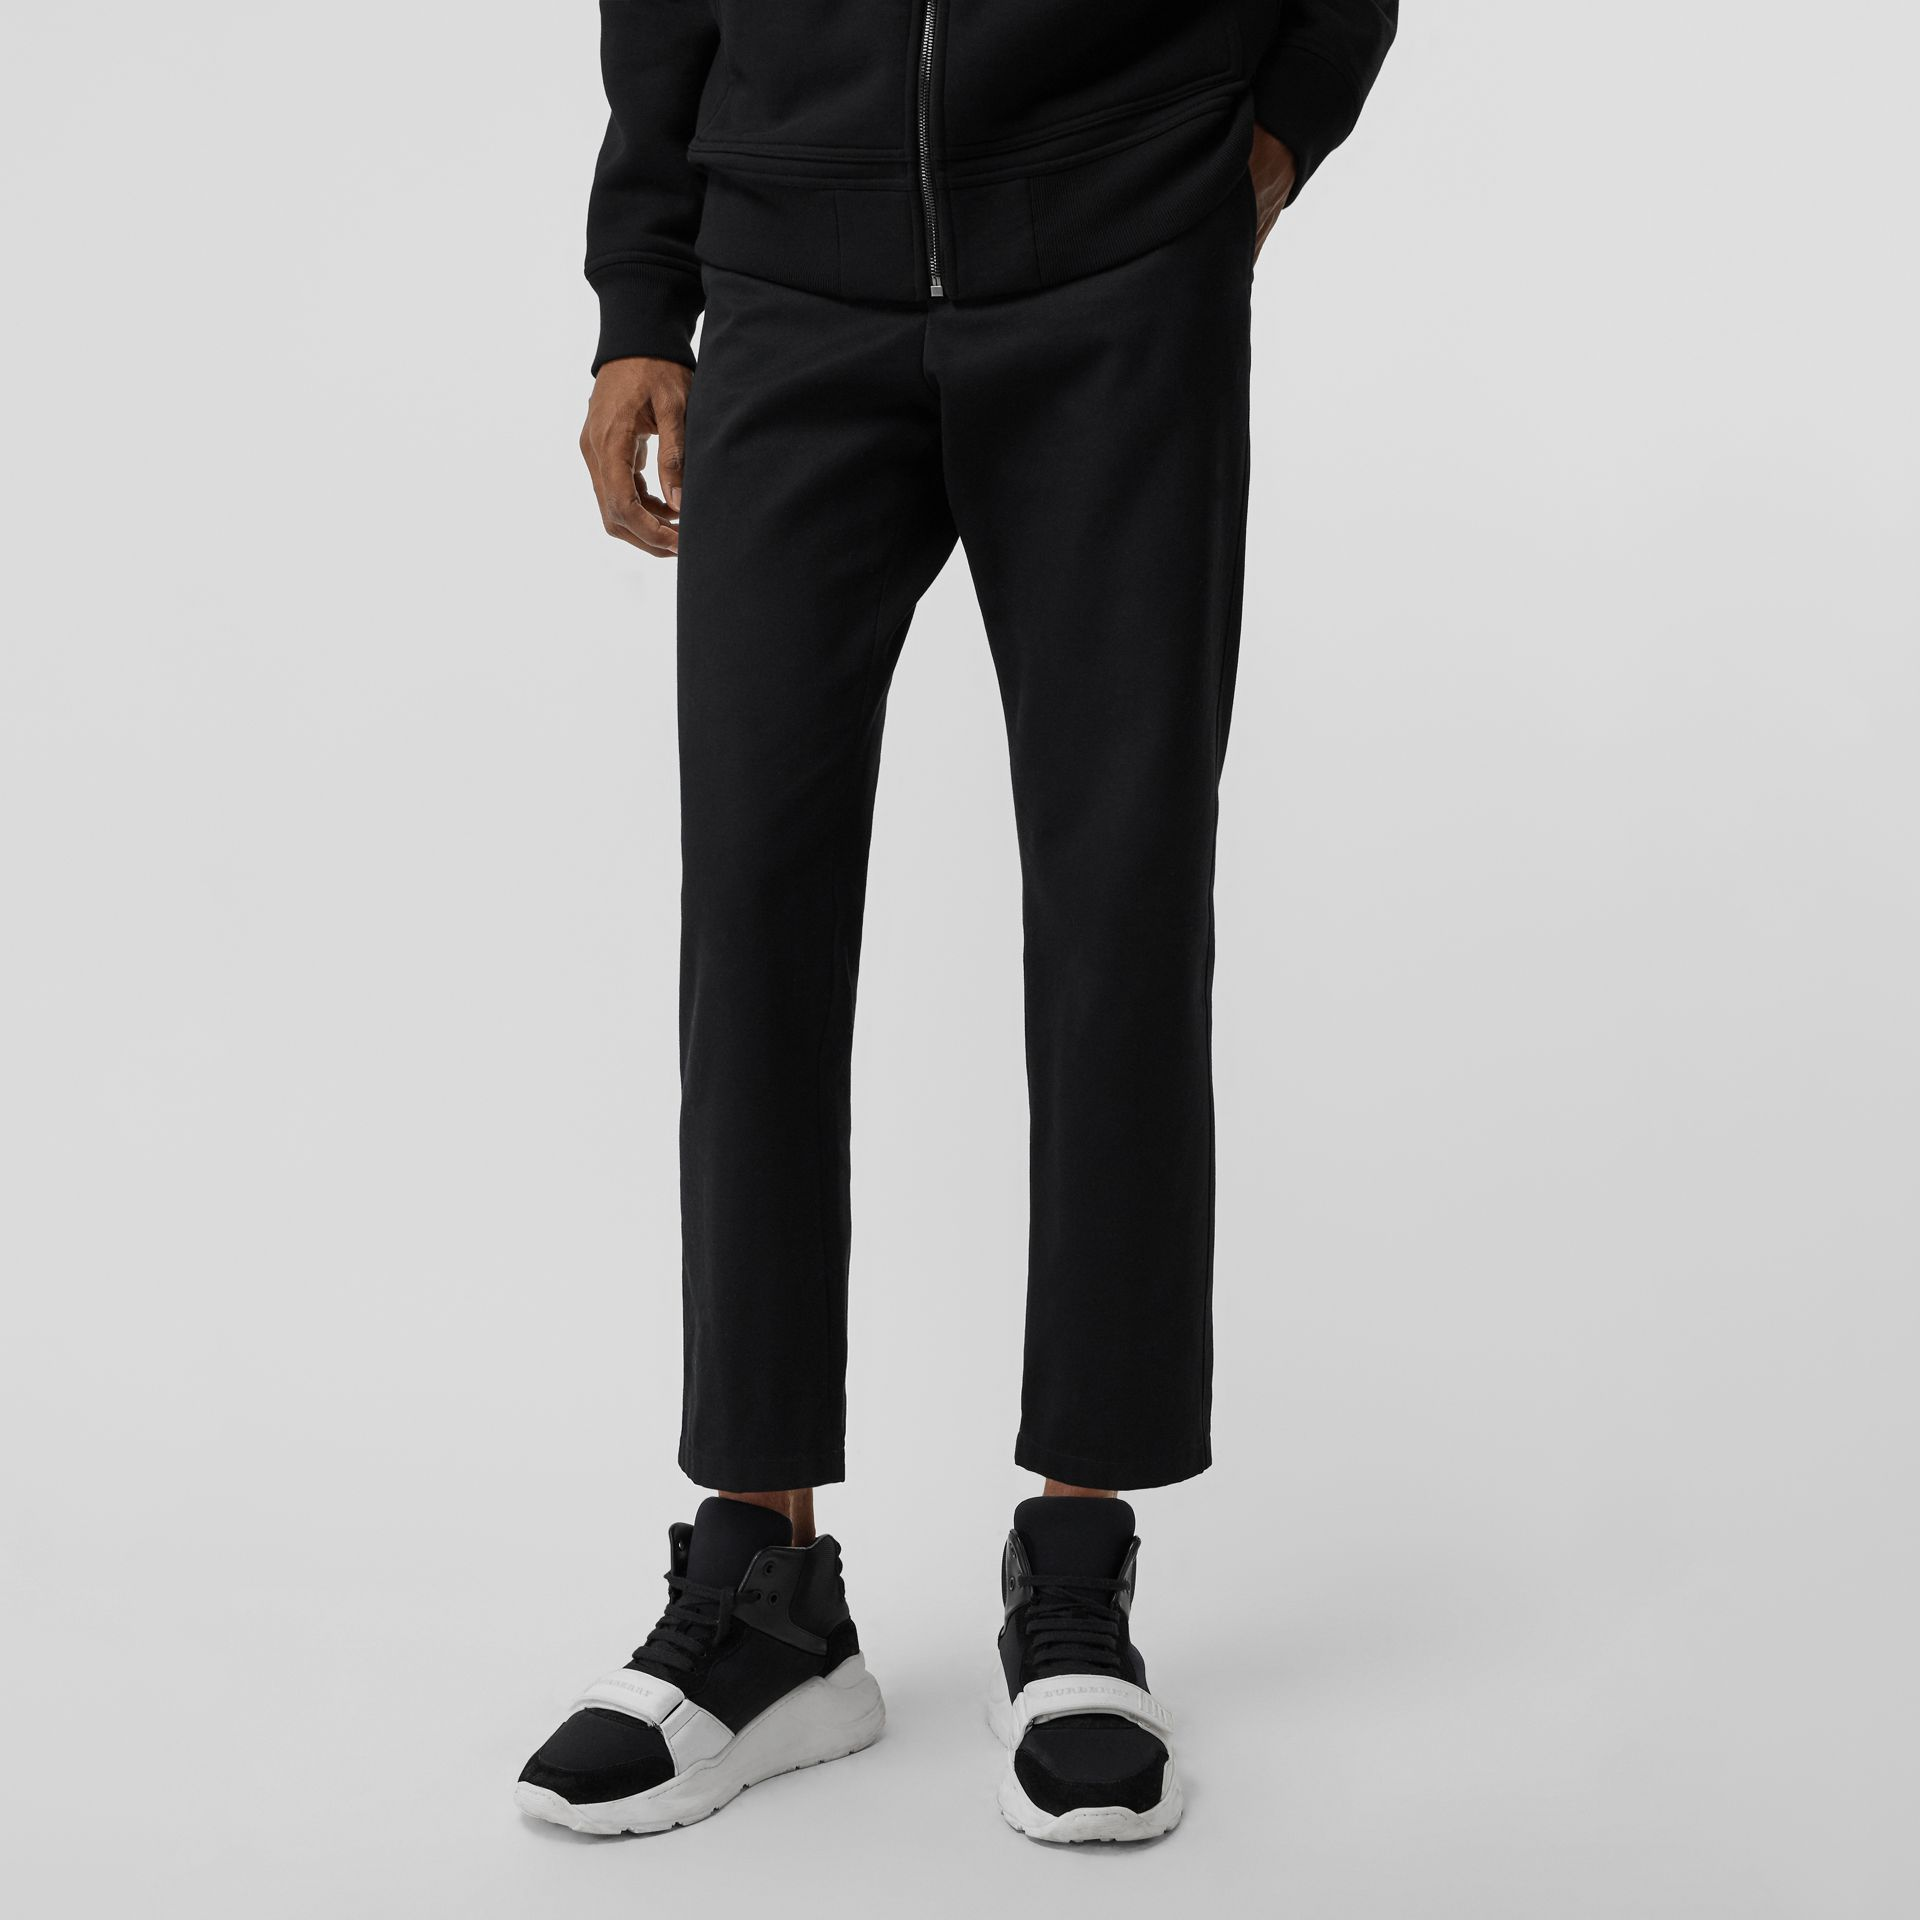 Slim Fit Cotton Blend Chinos in Black - Men | Burberry Canada - gallery image 4